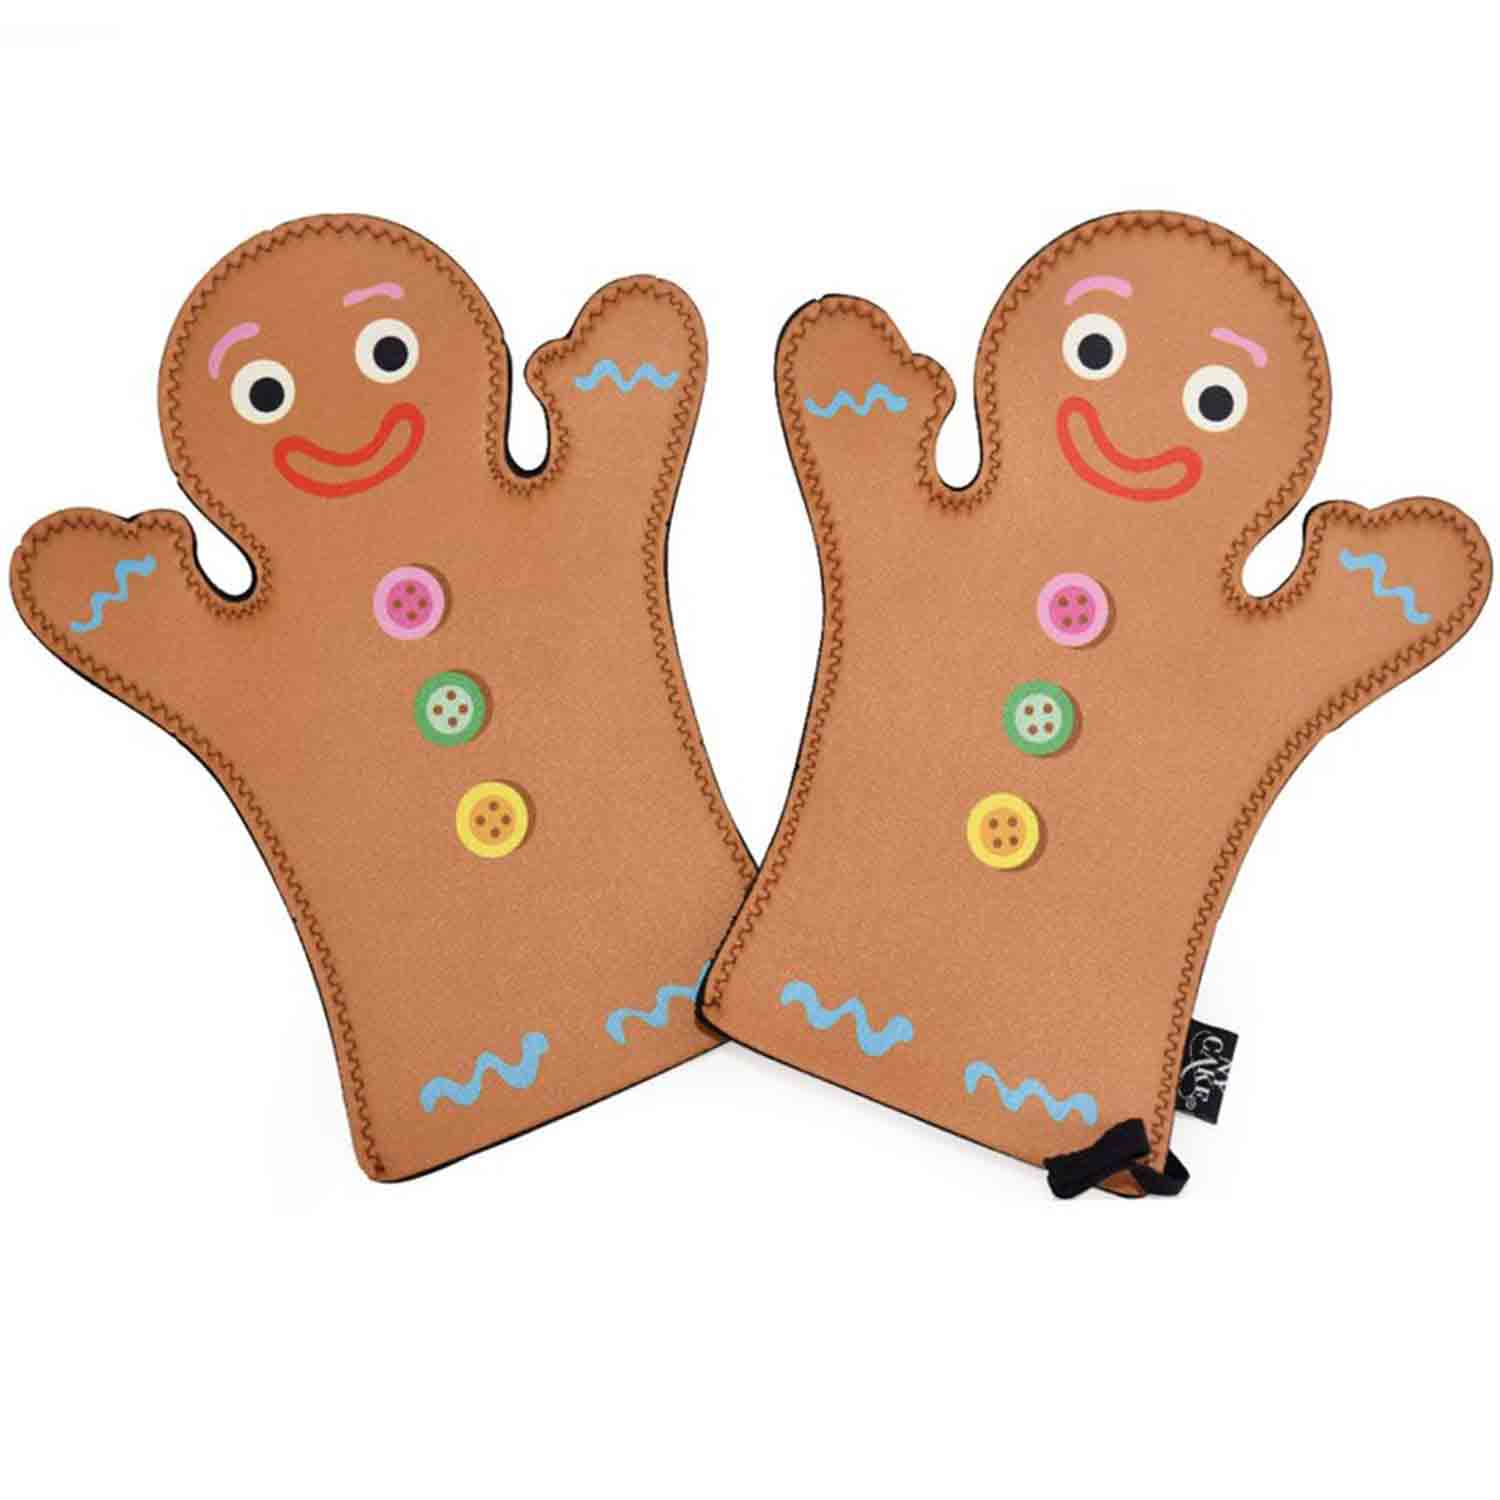 Gingerbread Boy Oven Mitts